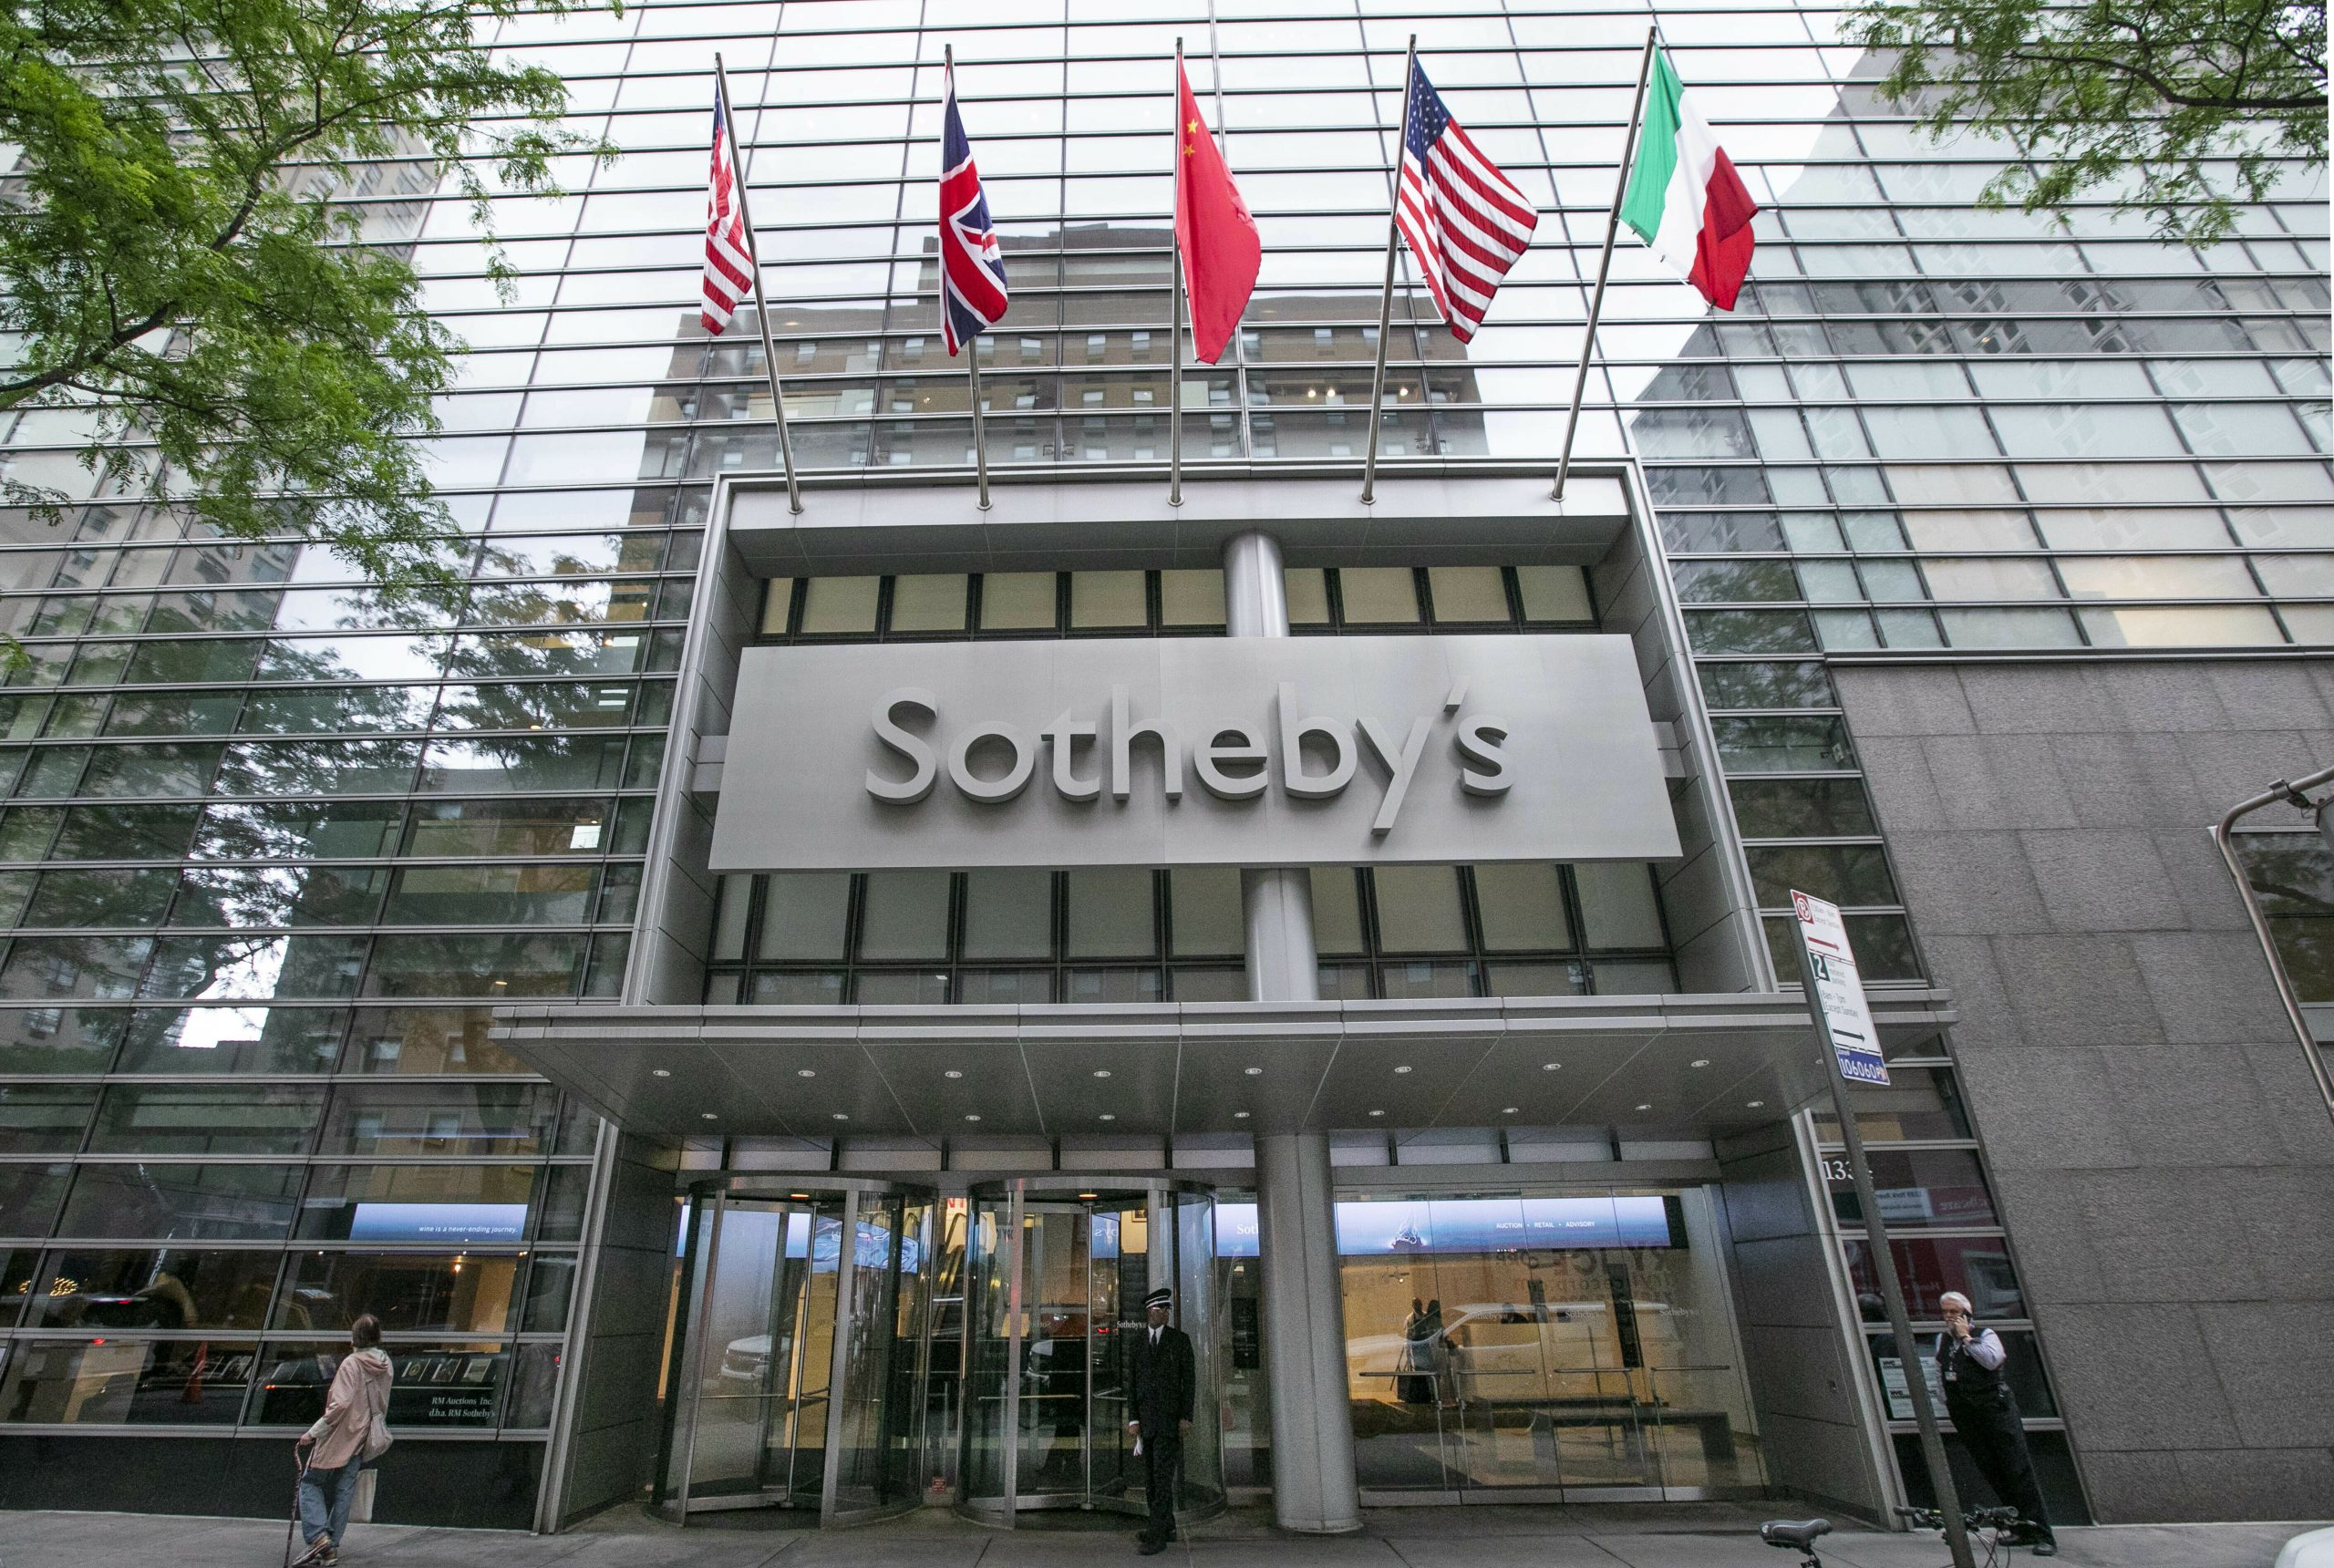 New York: Sotheby's helped wealthy art lovers avoid taxes